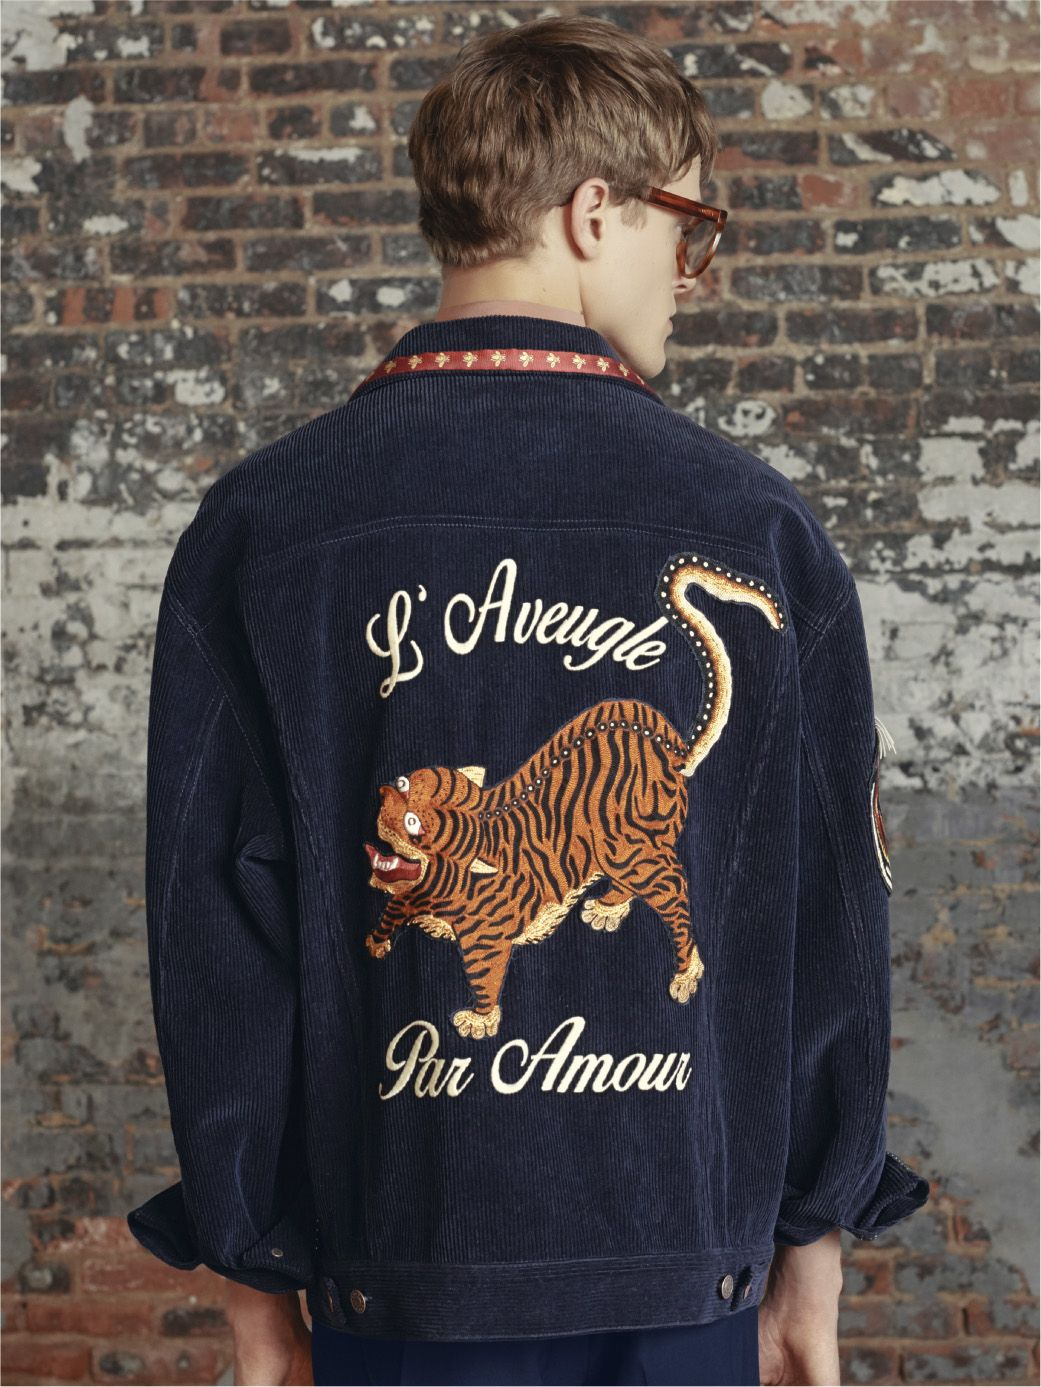 75df61dc4 Gucci's oversized blue velvet corduroy jacket with multiple embroideries  and appliqués.